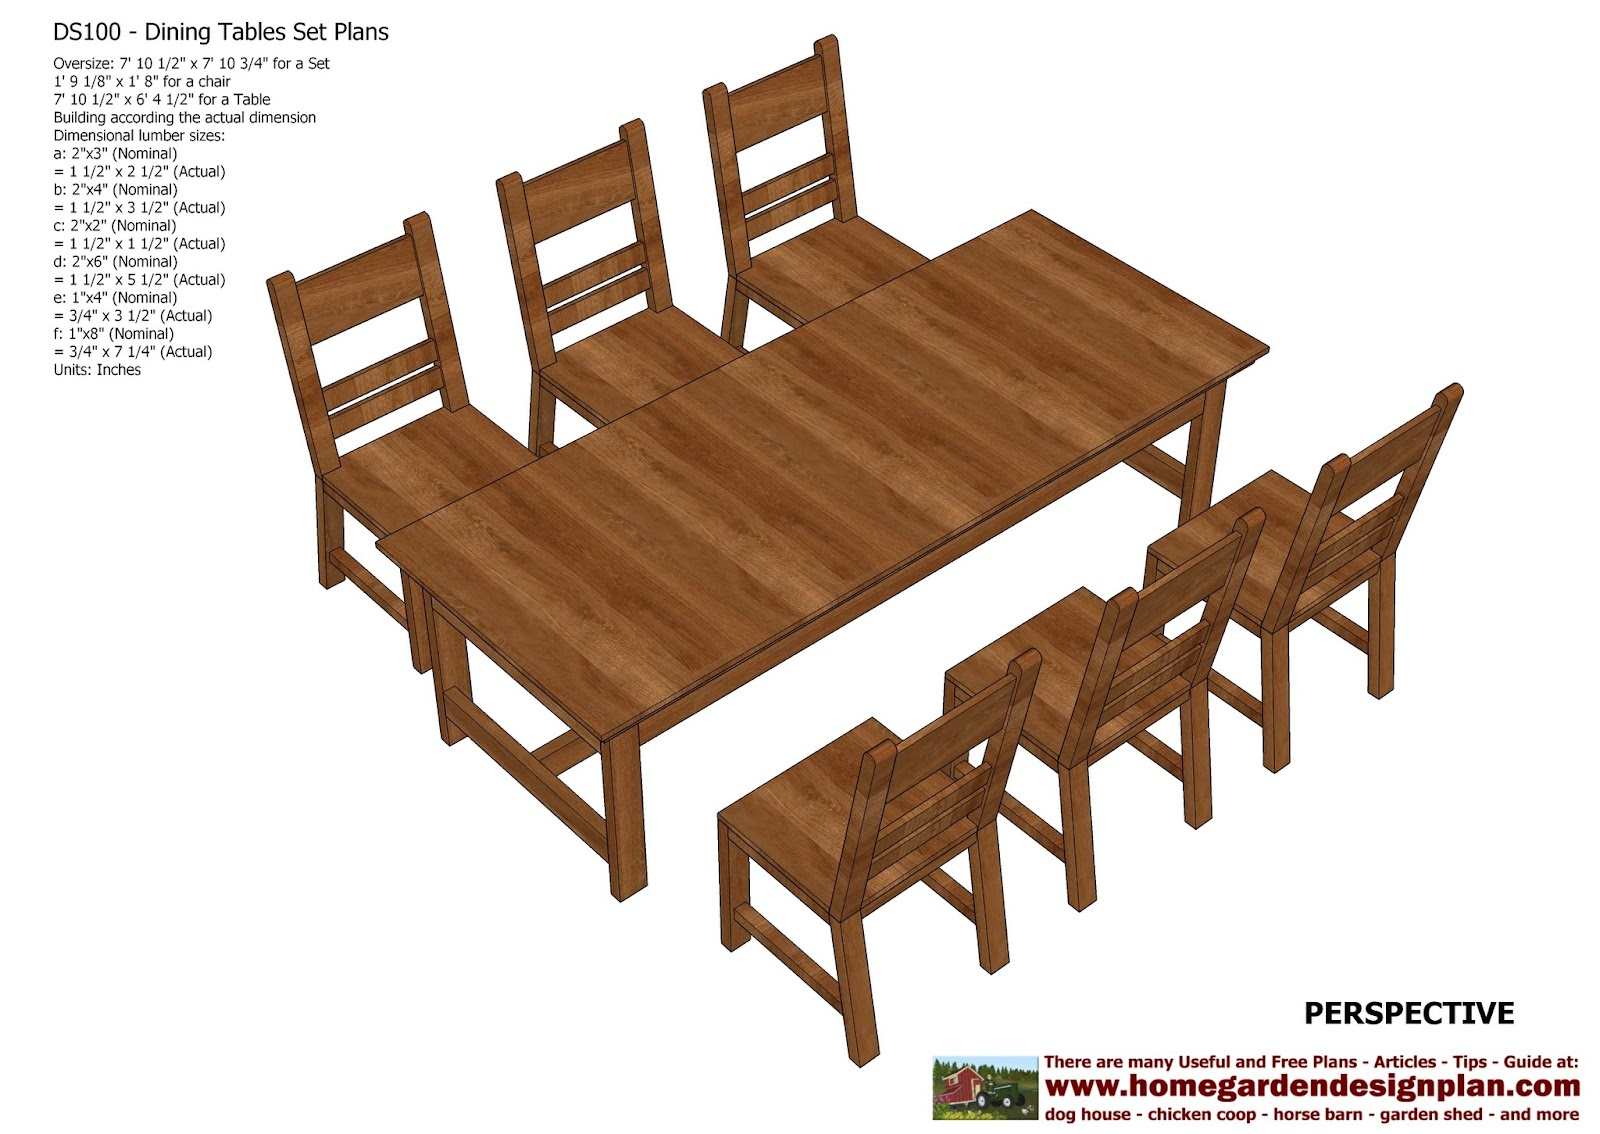 Woodworking plans for kids woodwork samples for Dining table plans woodworking free